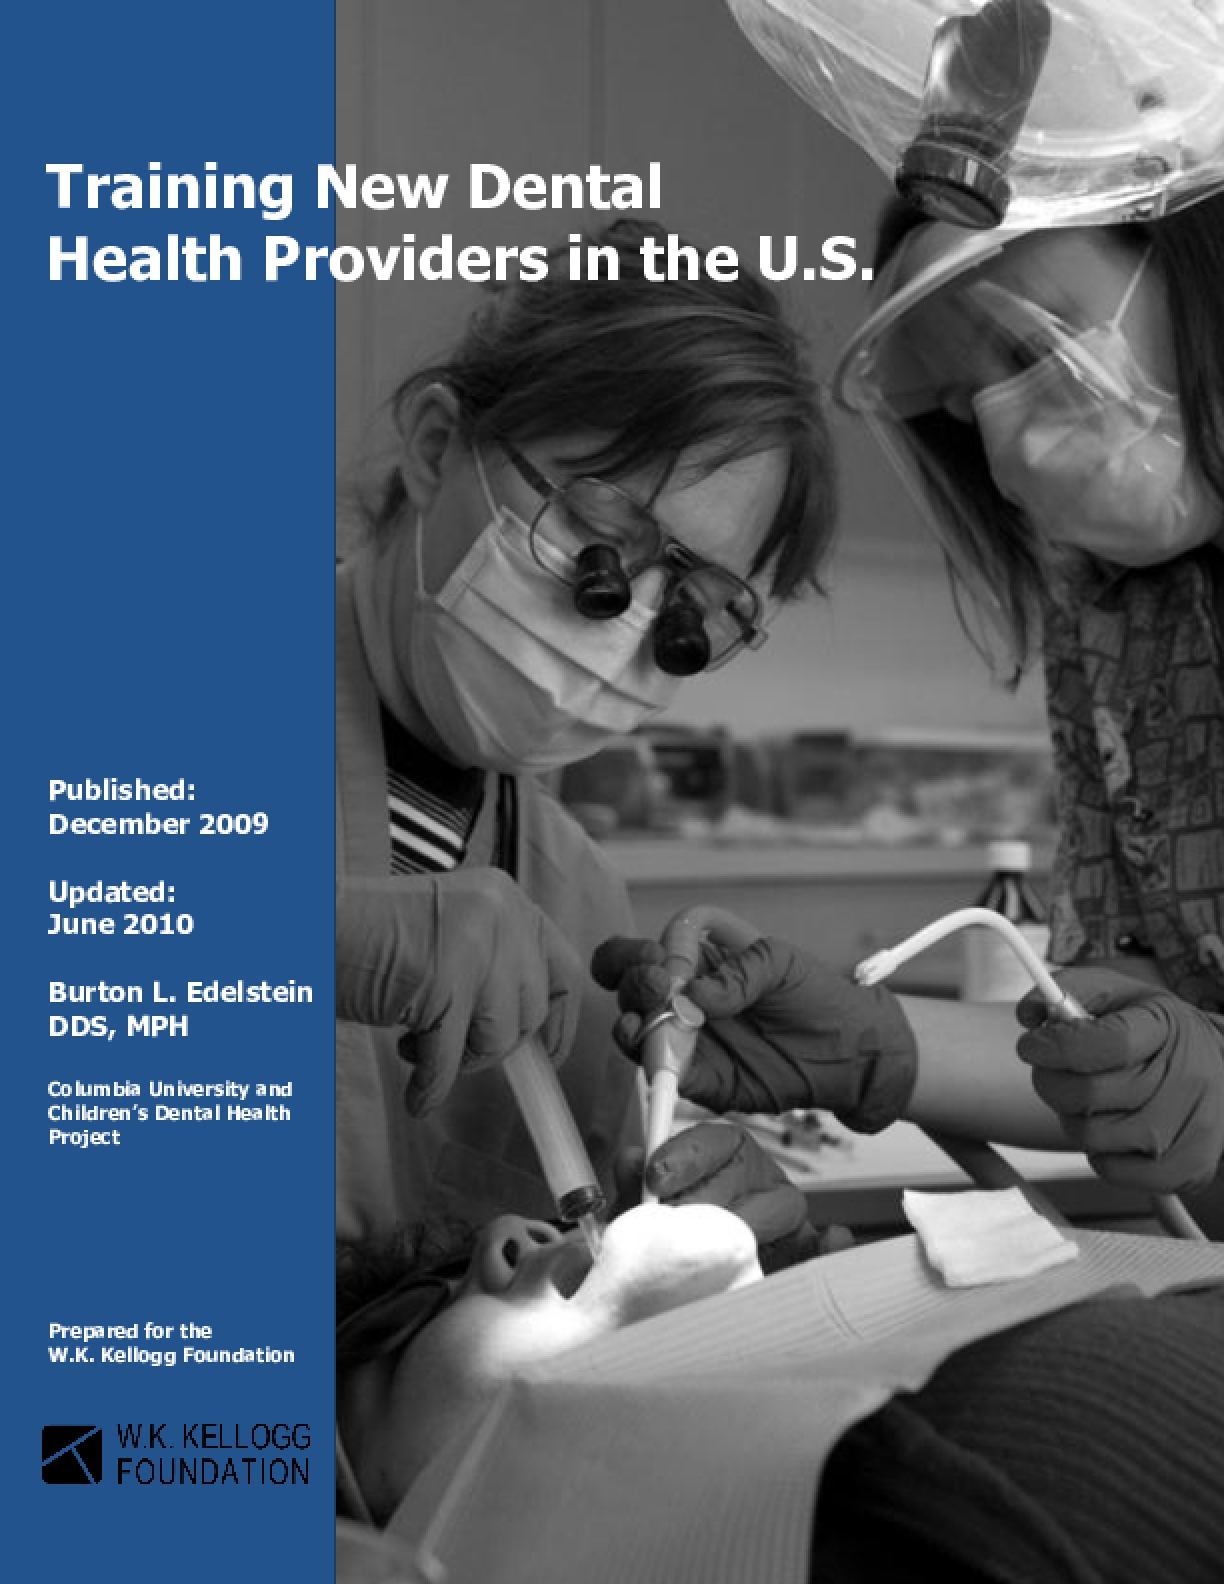 Training New Dental Health Providers in the U.S. (Full Report)